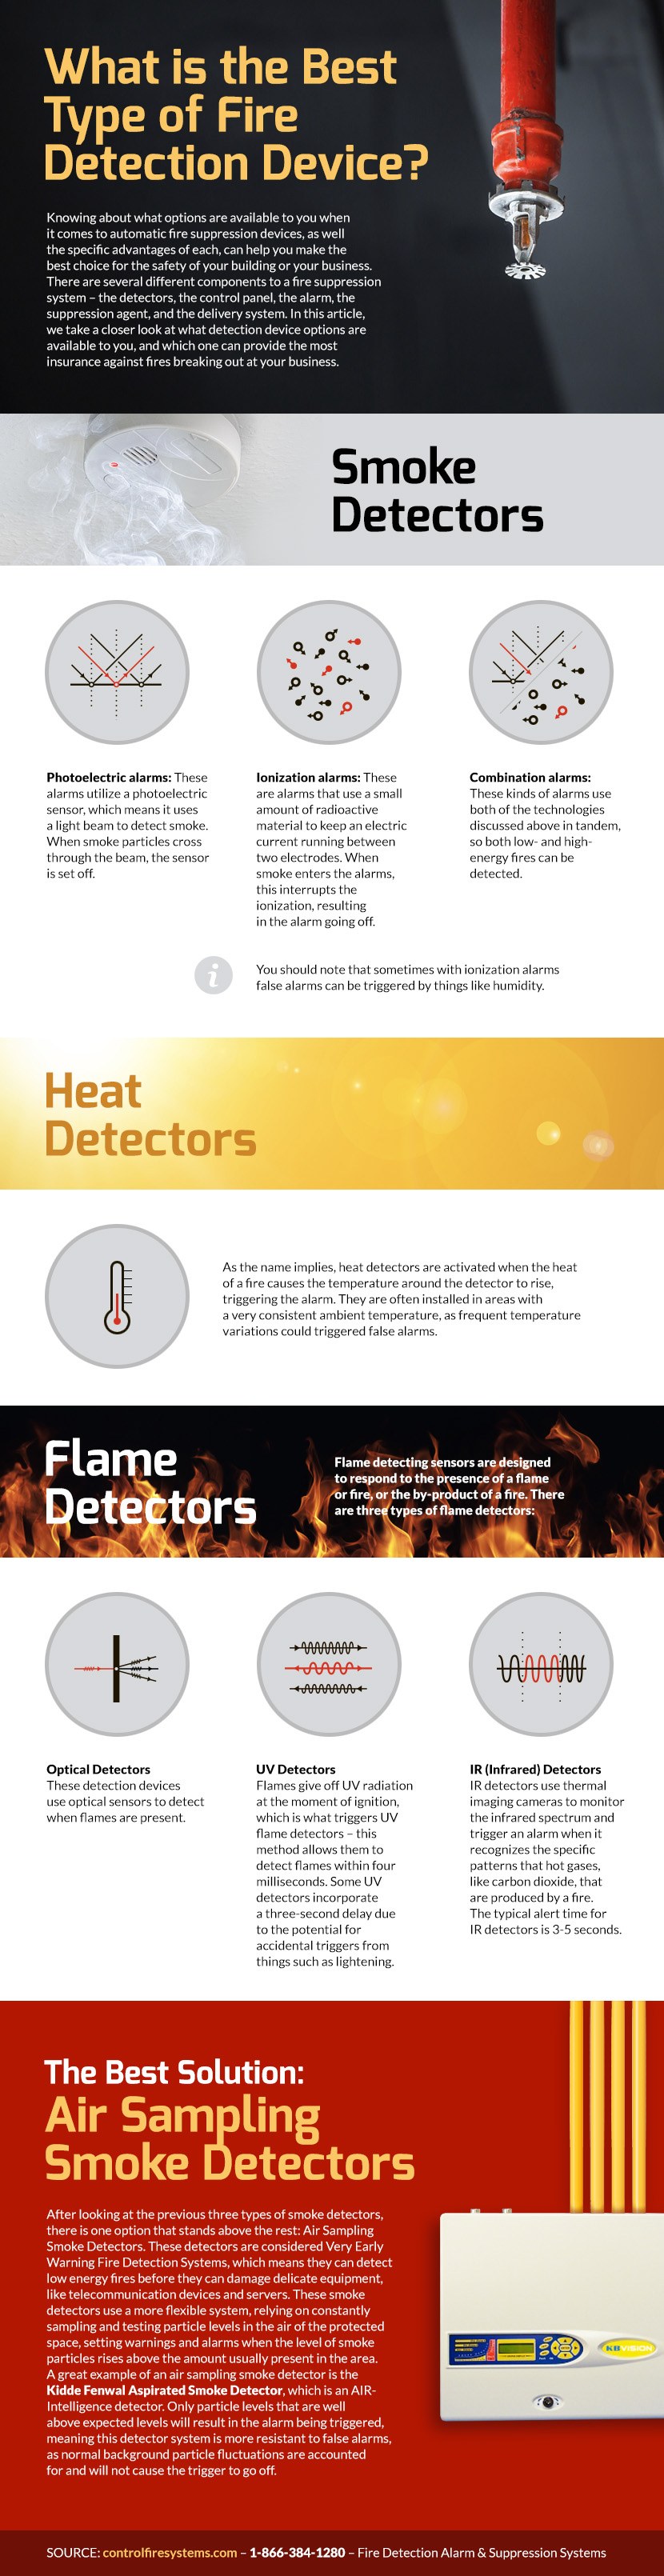 What is the Best Type of Fire Detection Device? - Control Fire Systems Ifographic